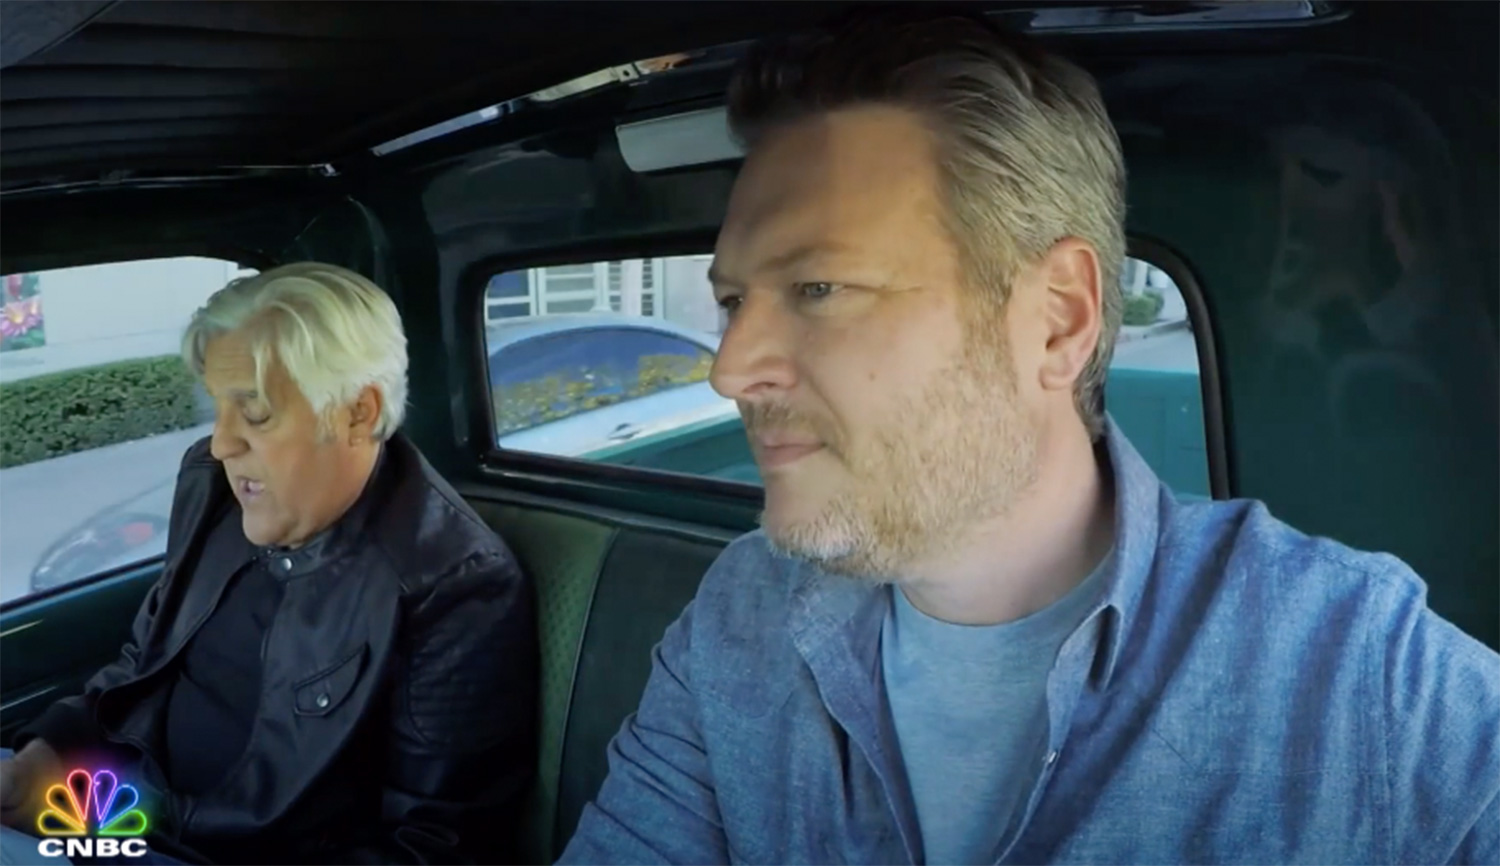 Blake Shelton Appears on CNBC's Jay Leno's Garage